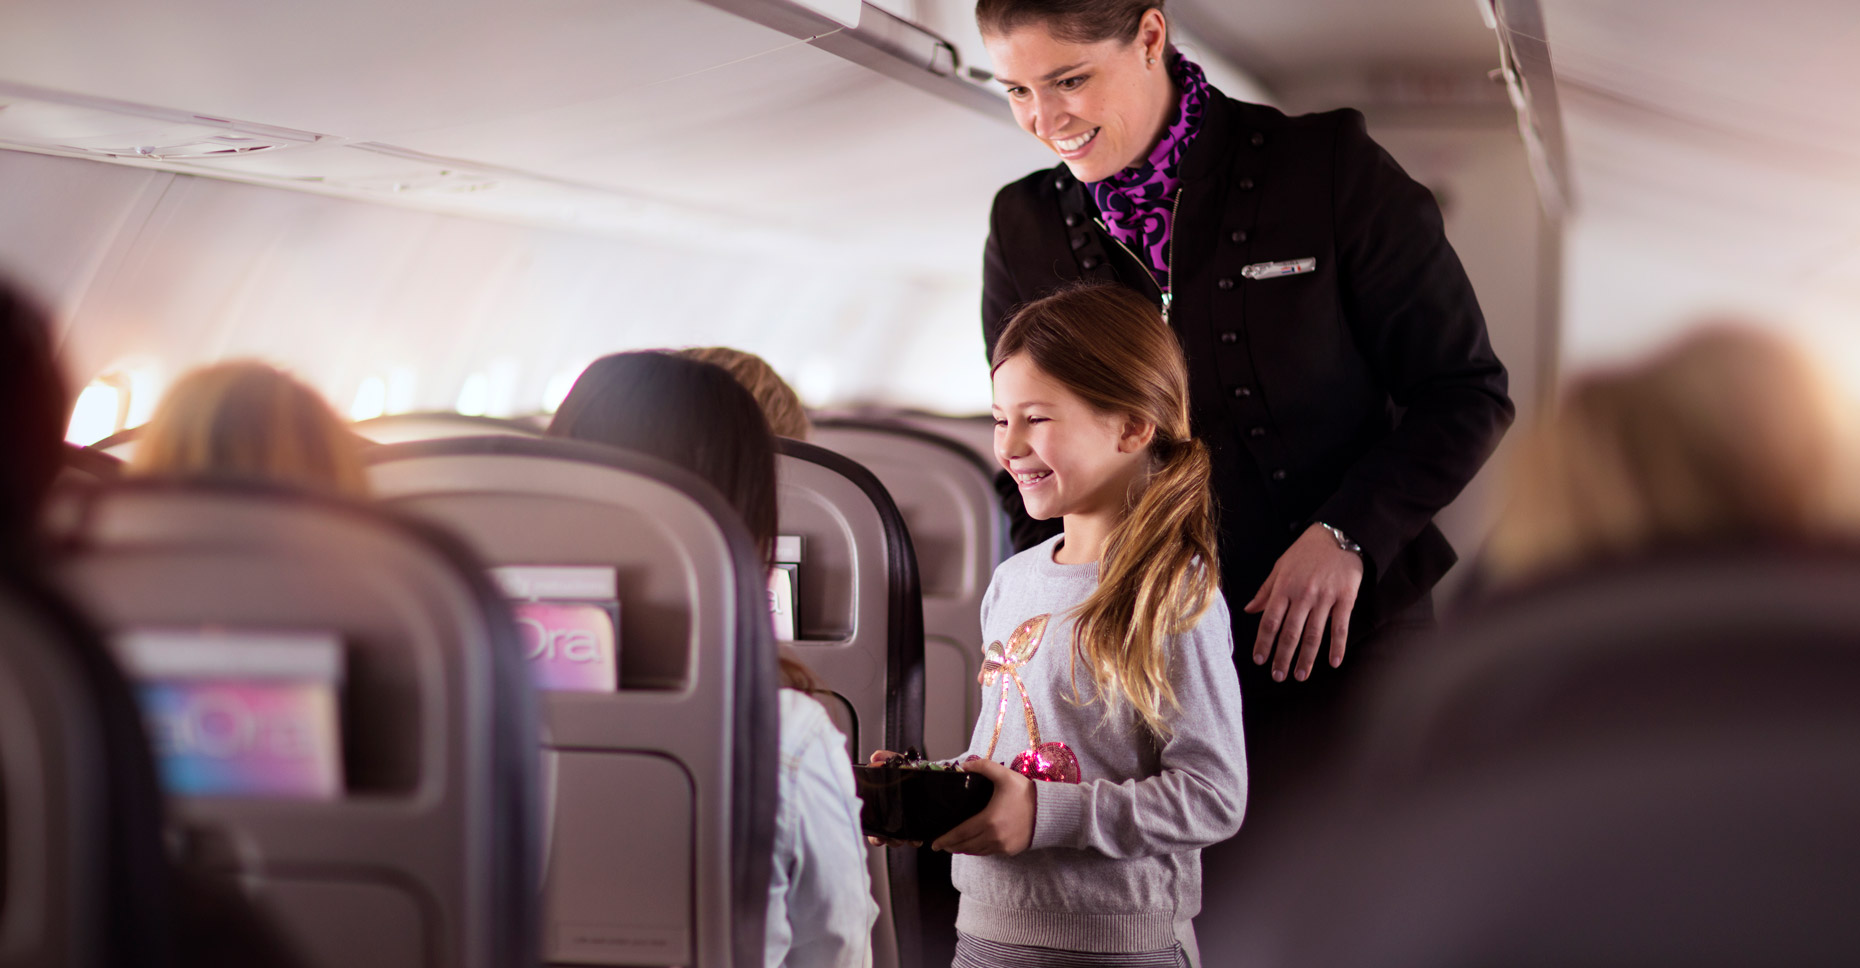 AIRNZ_ONBOARD_GIRL_SWEETS_5464x4096